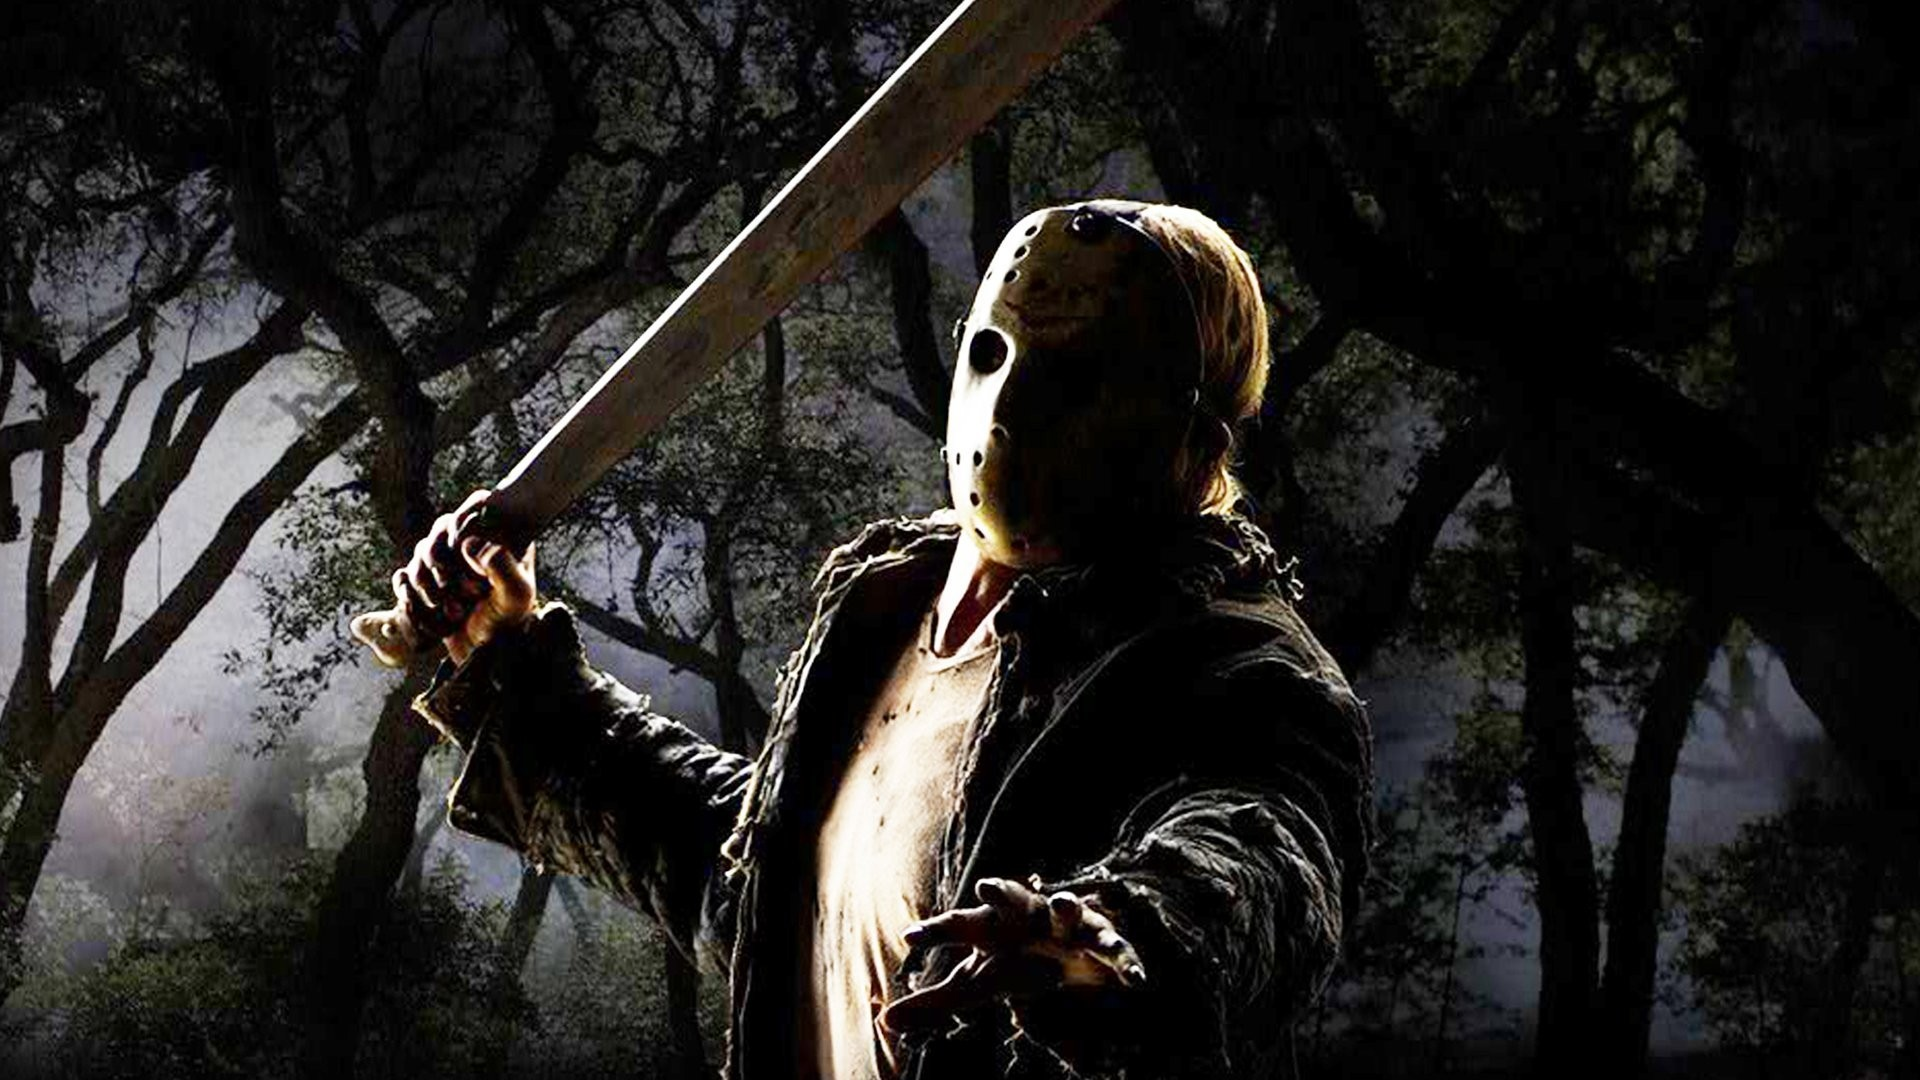 1920x1080 ... Game Wallpaper  Jason Voorhees wallpaper ·â' Download free  amazing High Resolution